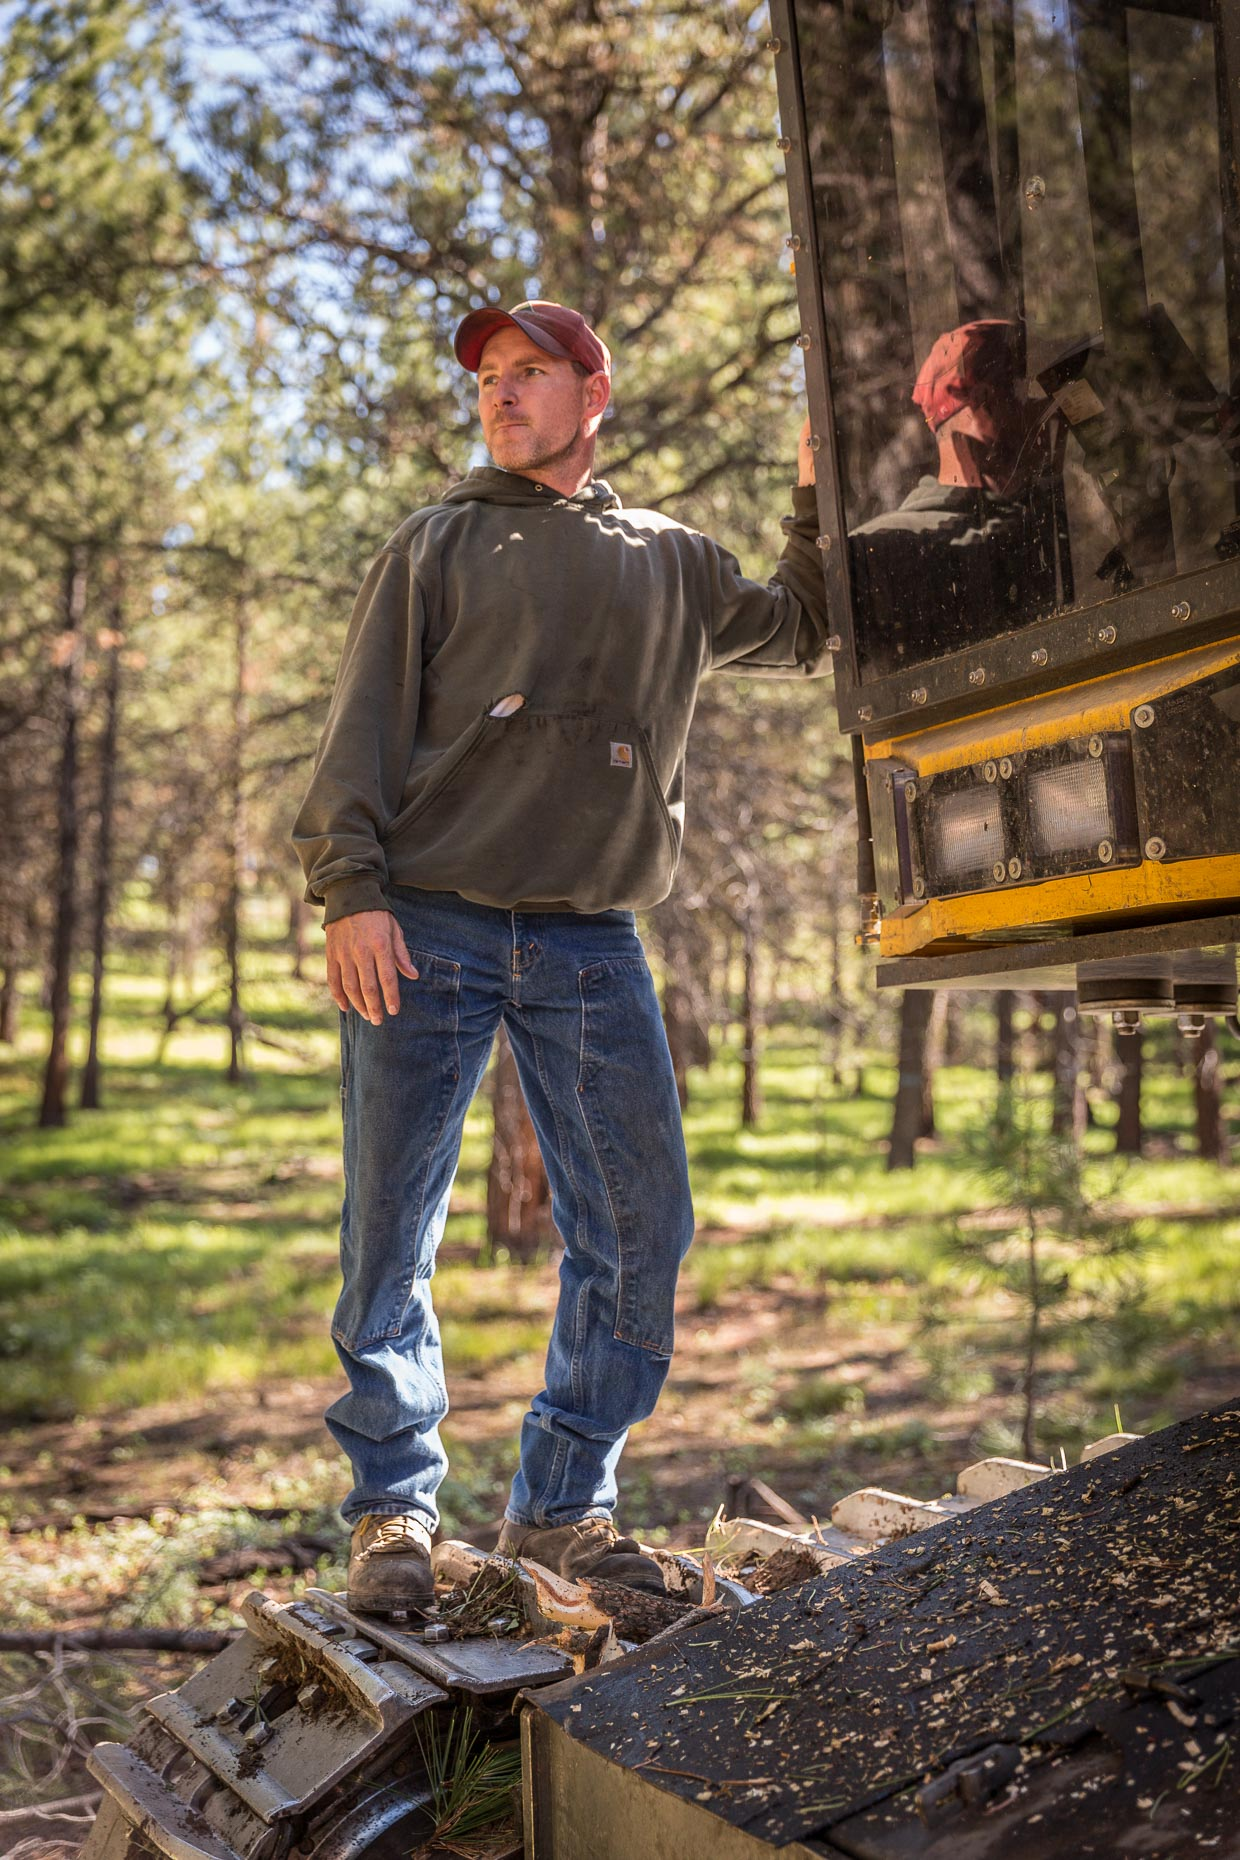 Environmental portrait of man working logging operation in Oregon standing on tree cutting machine, by David Zaitz